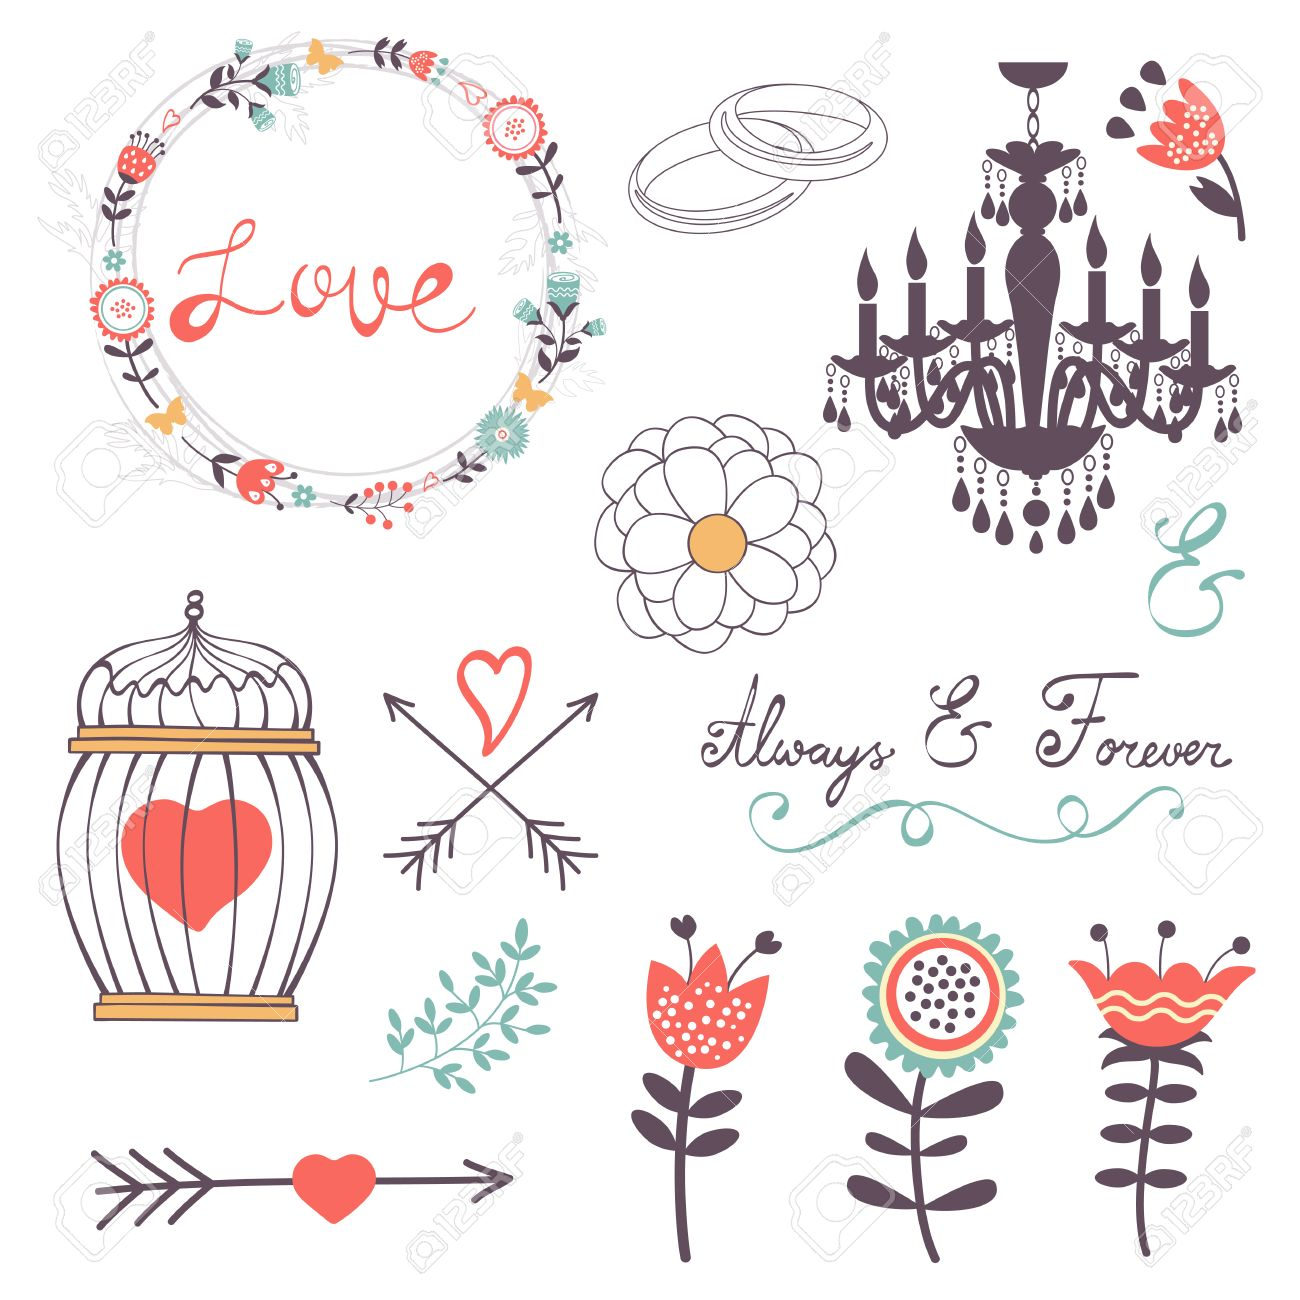 Elegant Collection Of Romantic Graphic Elements. Ideal For Wedding ...